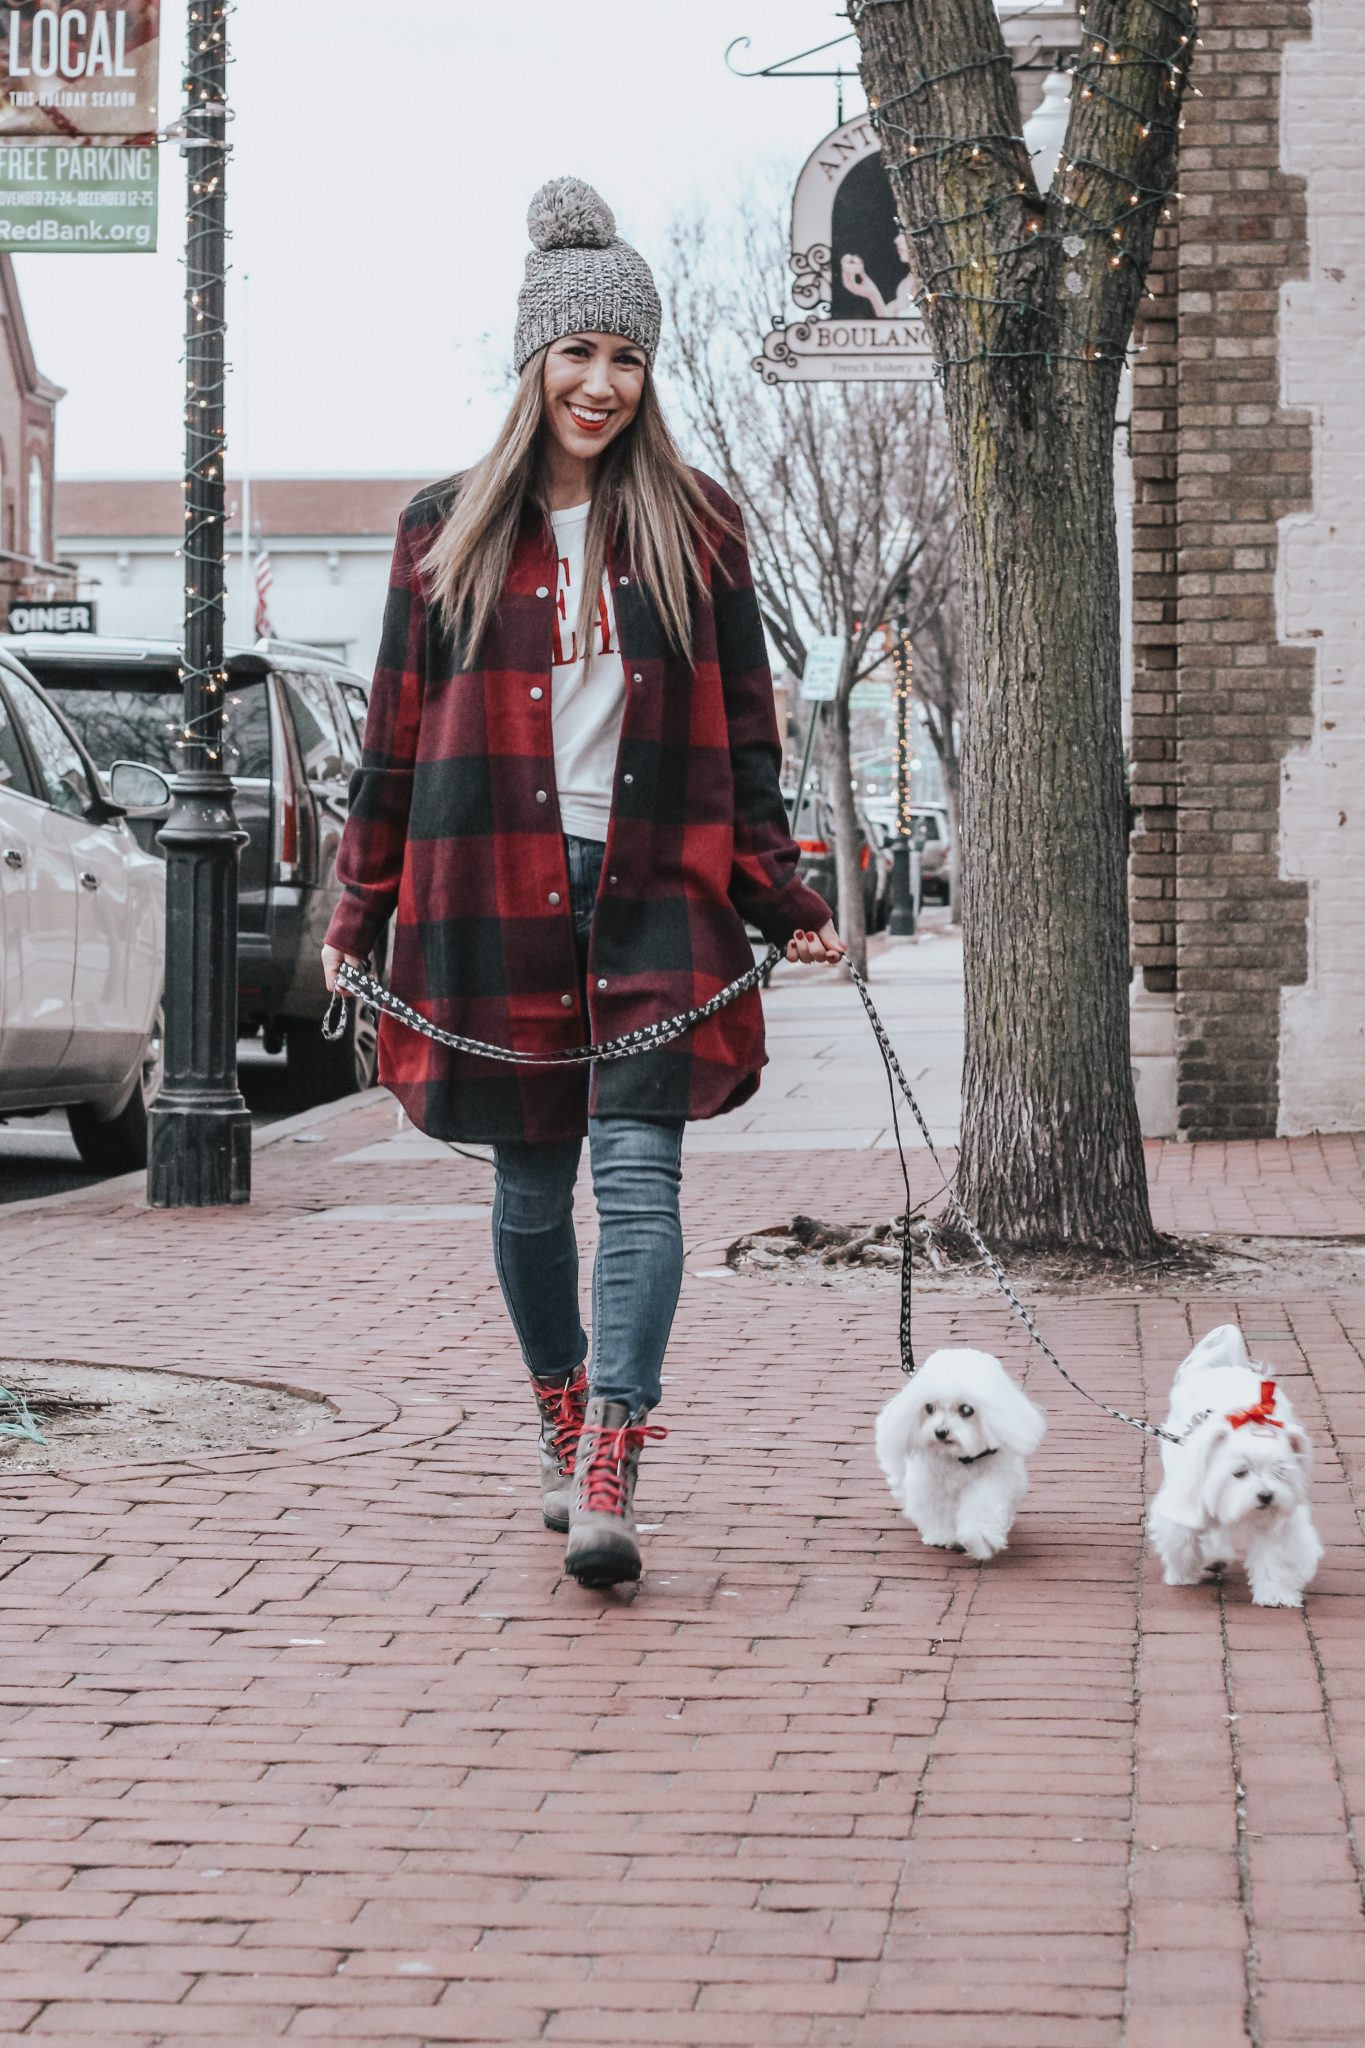 BUNDLED UP IN THIS EVEREVE RED PLAID COAT